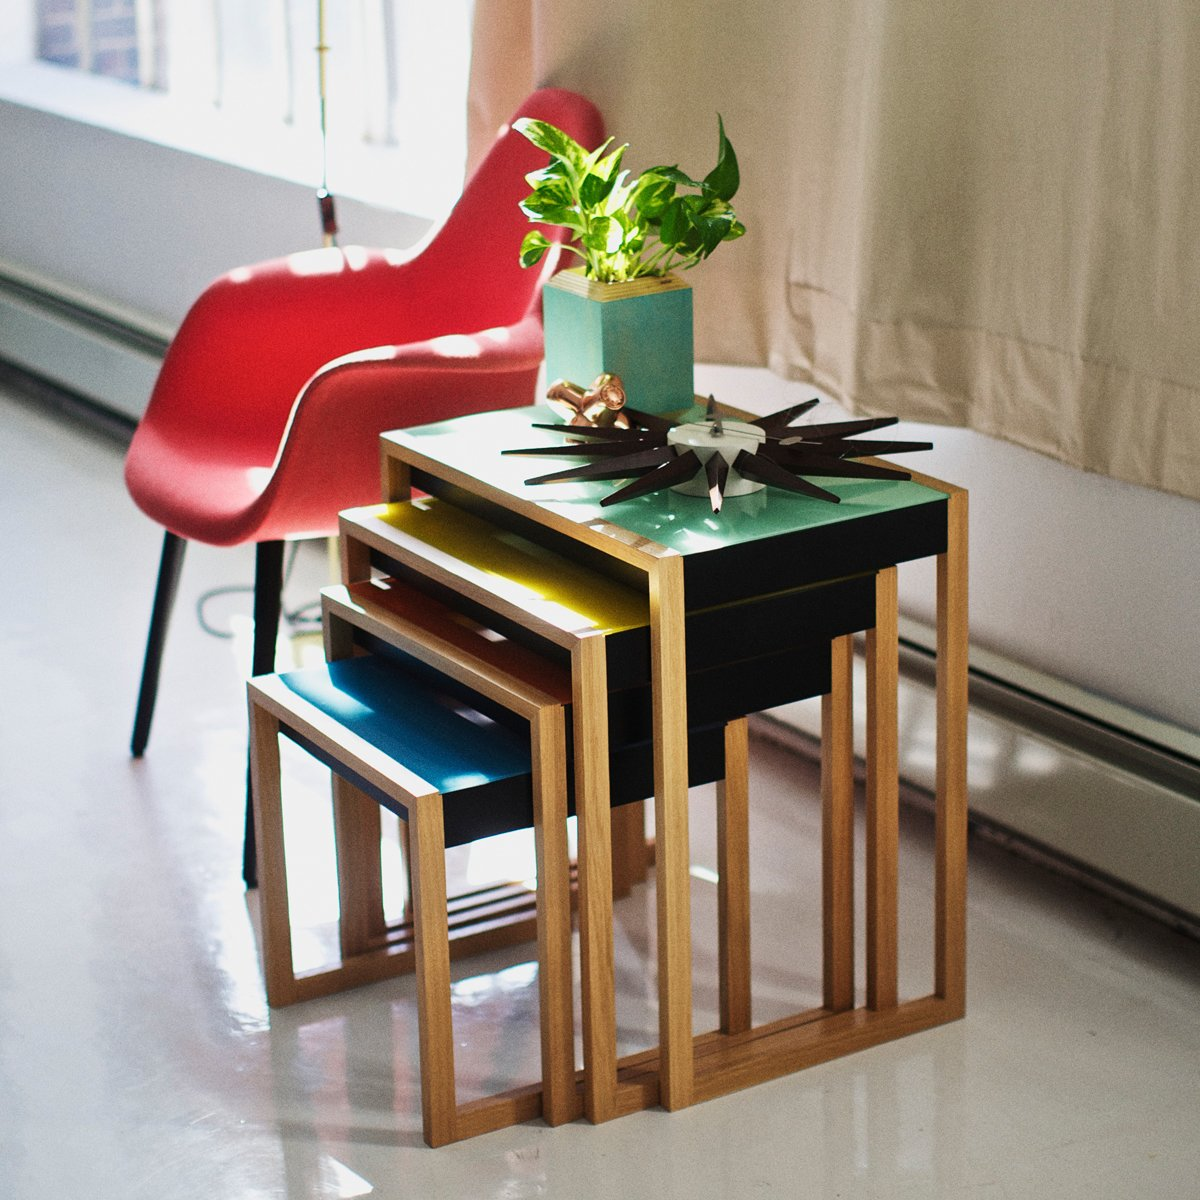 """A modern reproduction of a 1926 set of tables, these nesting tables show Josef Albers's mastery of color. The set was originally built for the Moellenhoff family in Berlin, Germany. Although their home was destroyed in the war, this piece, along with many others, was saved and brought to the United States prior to the outbreak of World War II.  Search """"classic danish nesting tables set"""" from Iconic Furniture Designs by Josef Albers"""